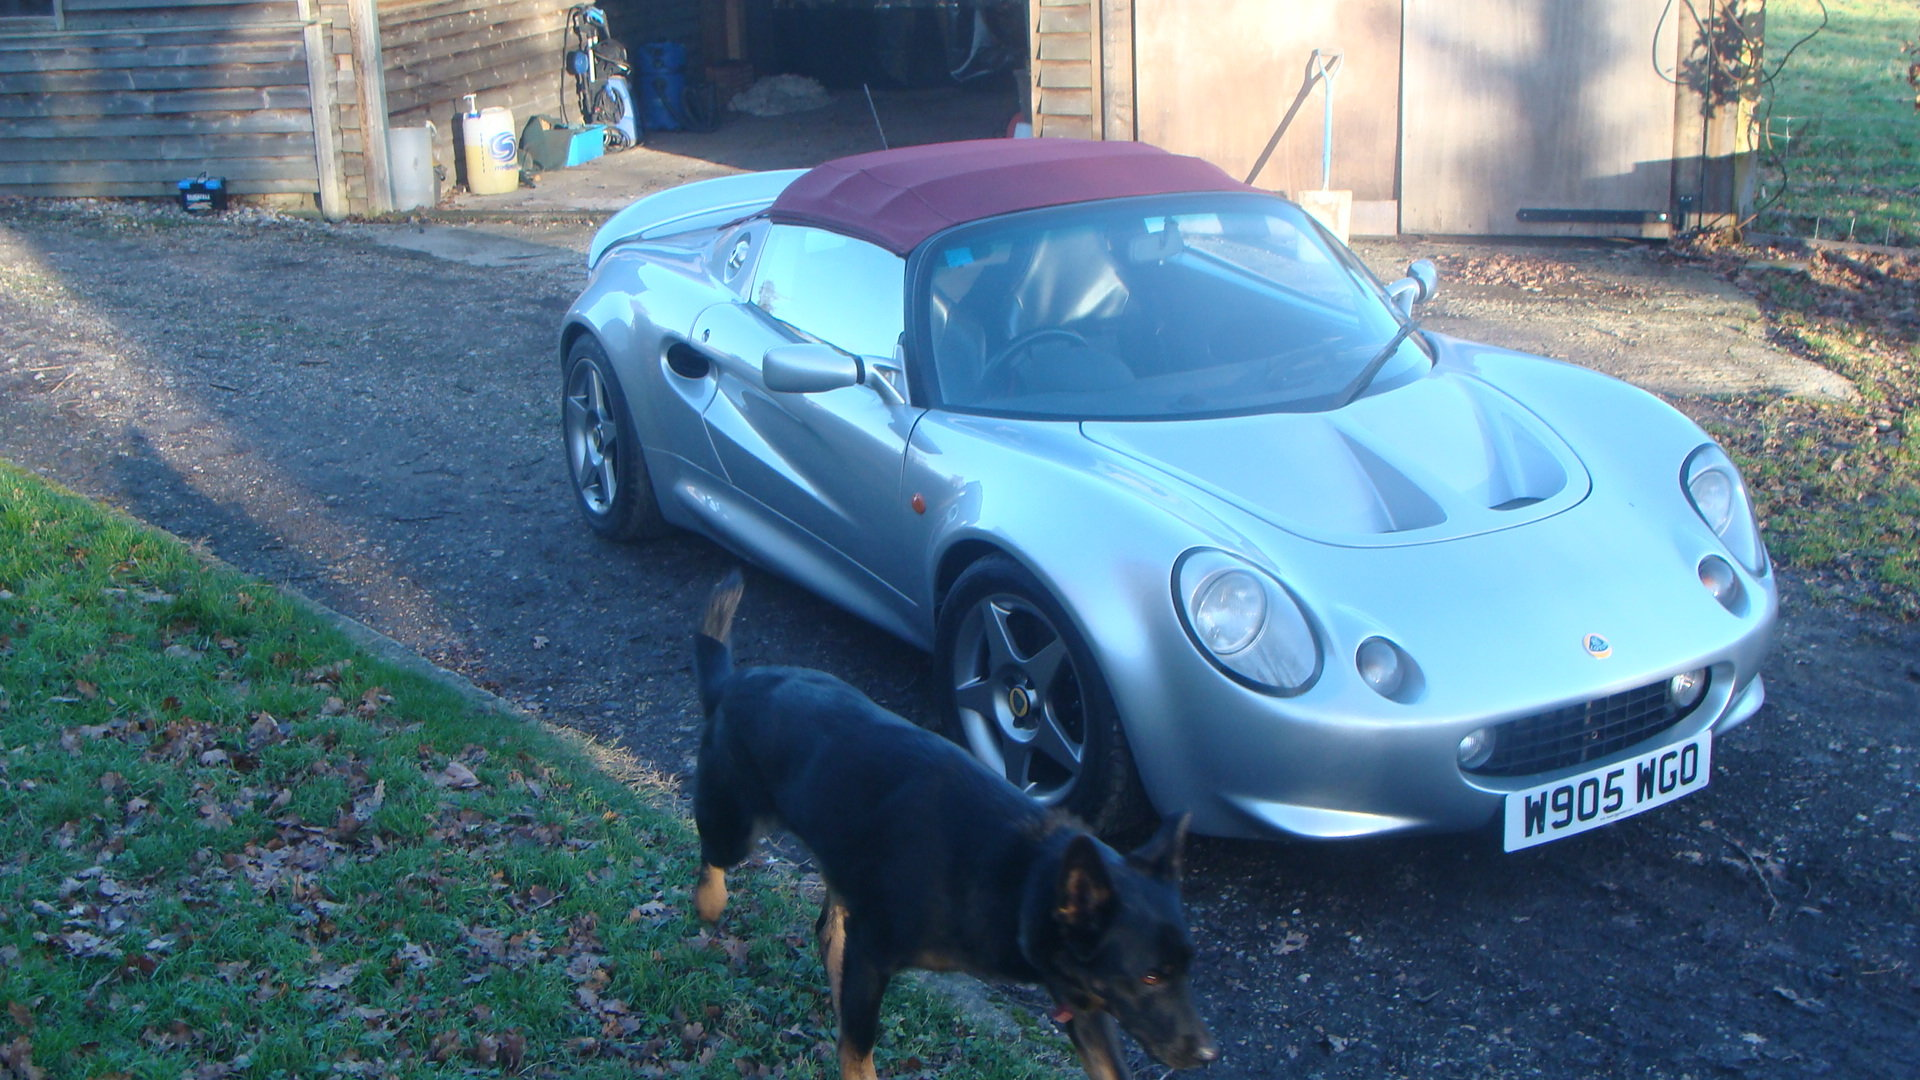 2000 Lotus Elise 160 Sport roadster For Sale (picture 6 of 6)